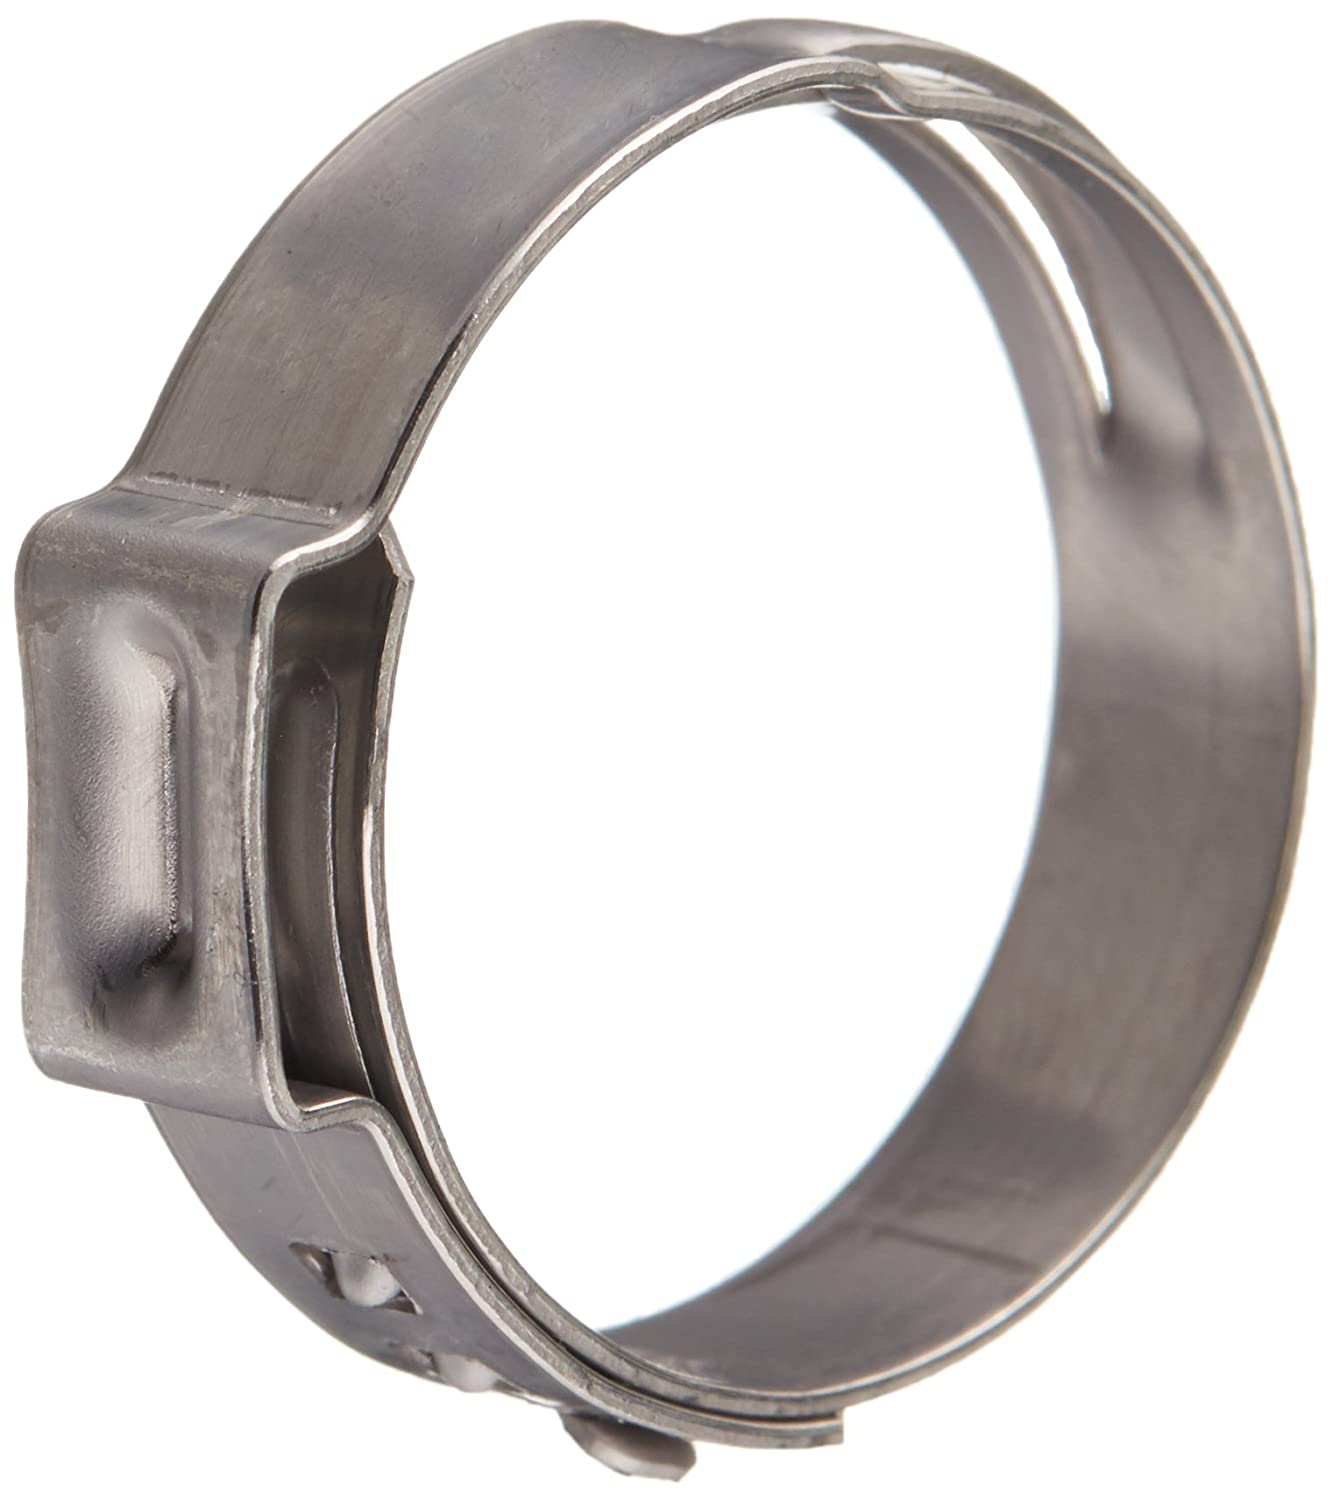 Open Clamp ID Range 36.4 mm One Ear Closed Pack of 5 Oetiker 16705322 Stepless Ear Clamp - 39.6 mm 7 mm Band Width